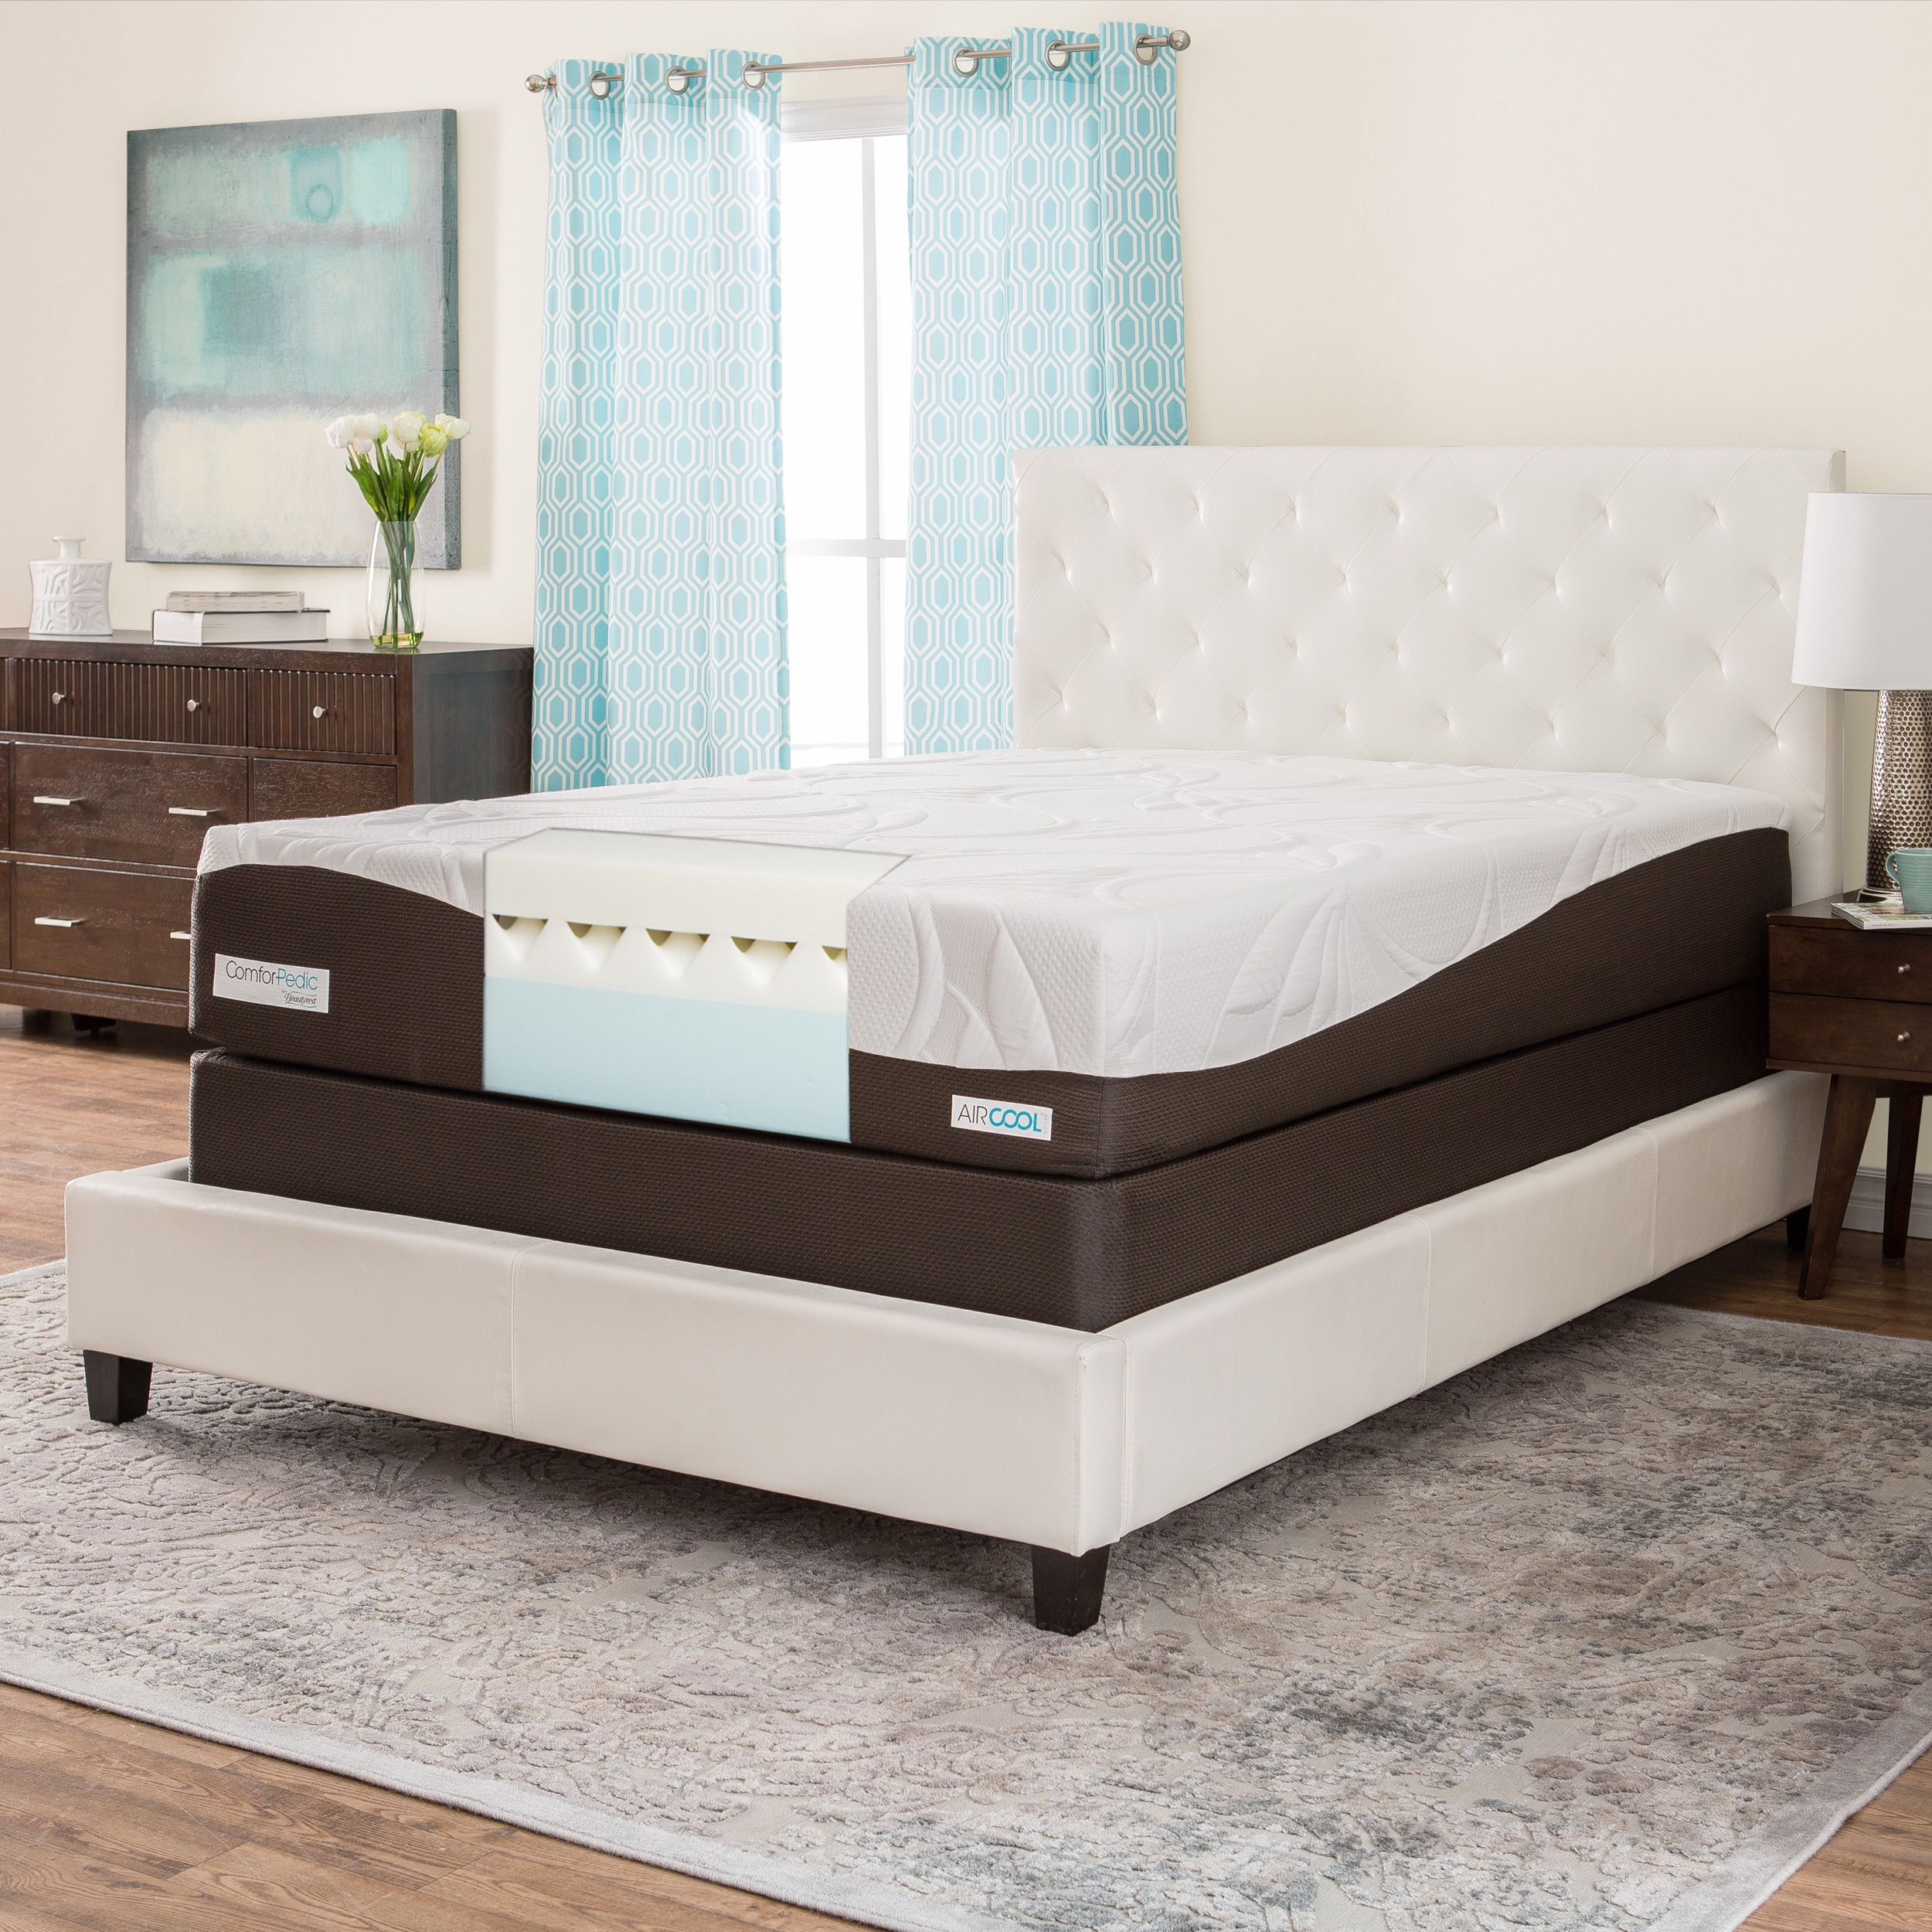 Simmons Beautyrest ComforPedic from Beautyrest 12-inch Full-size Memory Foam Mattress Set by Overstock